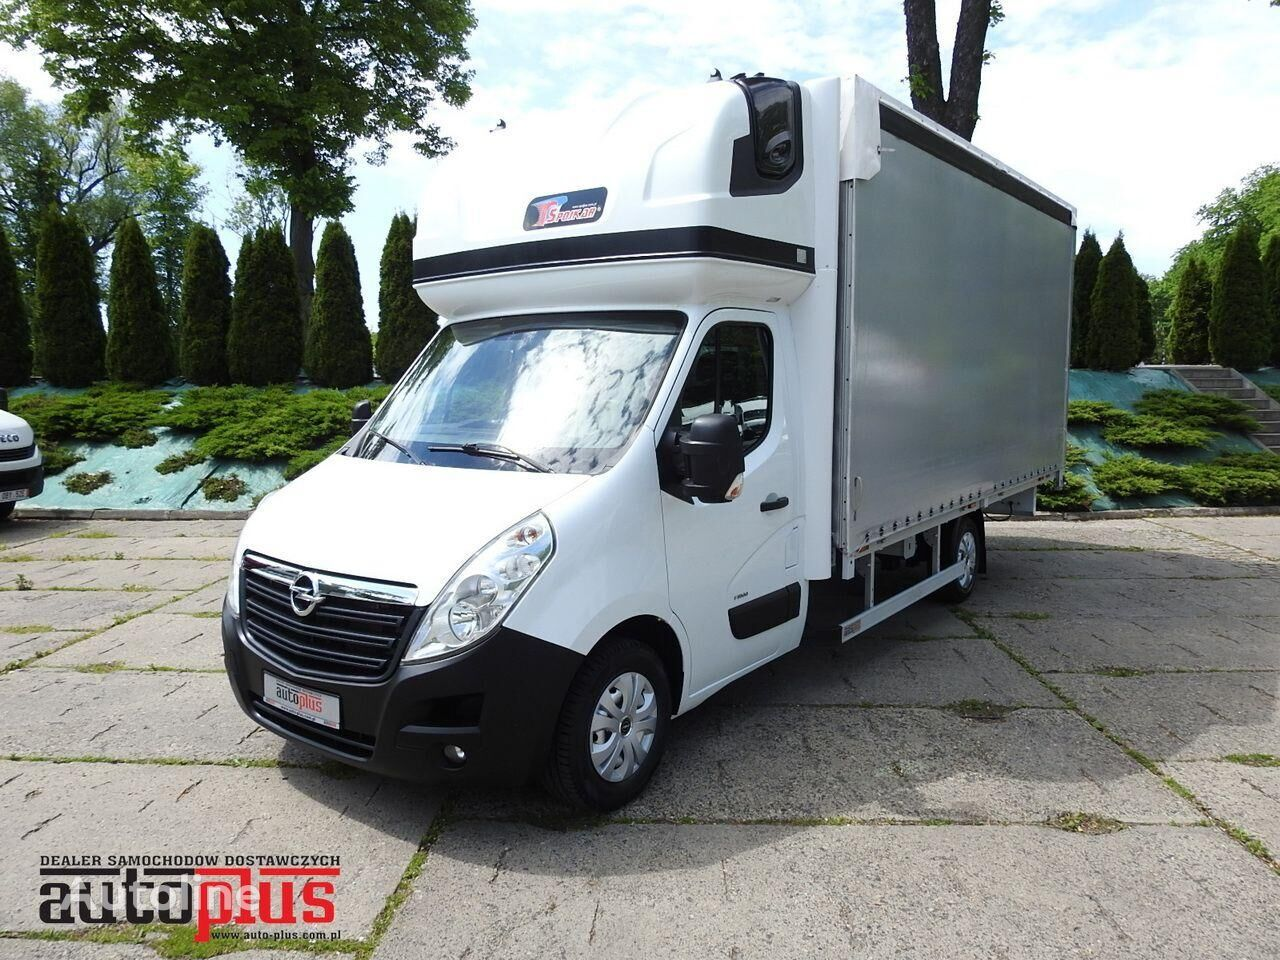 camion rideaux coulissants OPEL MOVANO